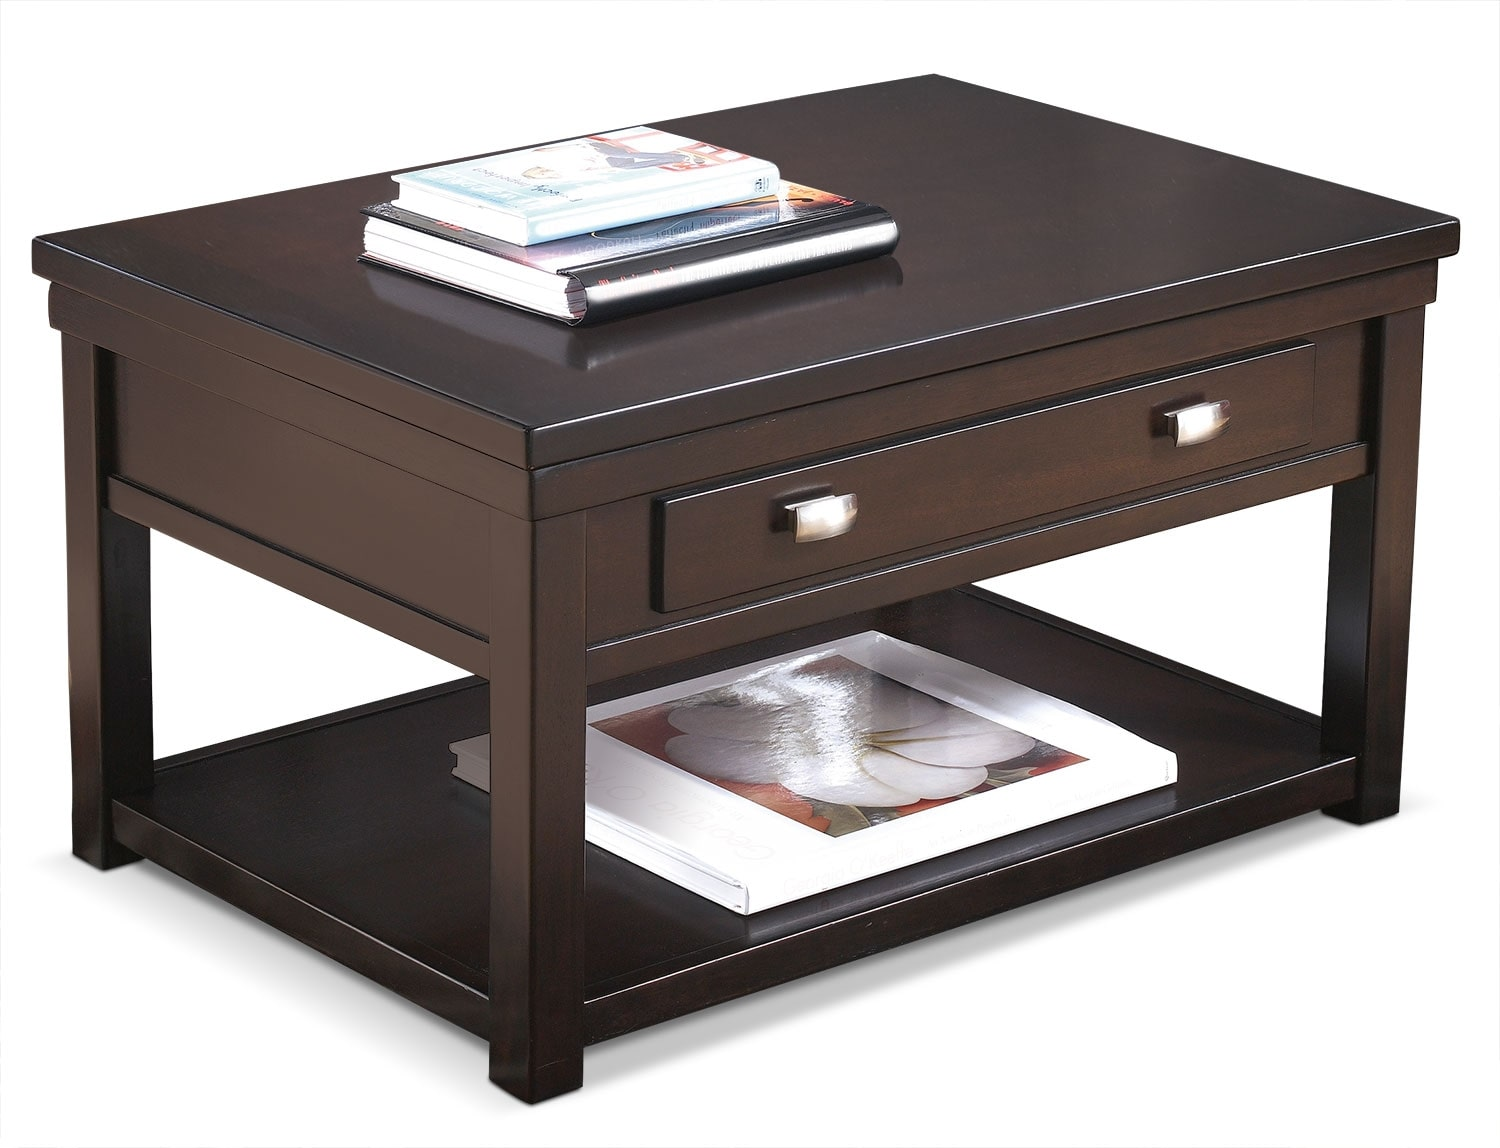 Hatsuko Coffee Table With Lift Top The Brick